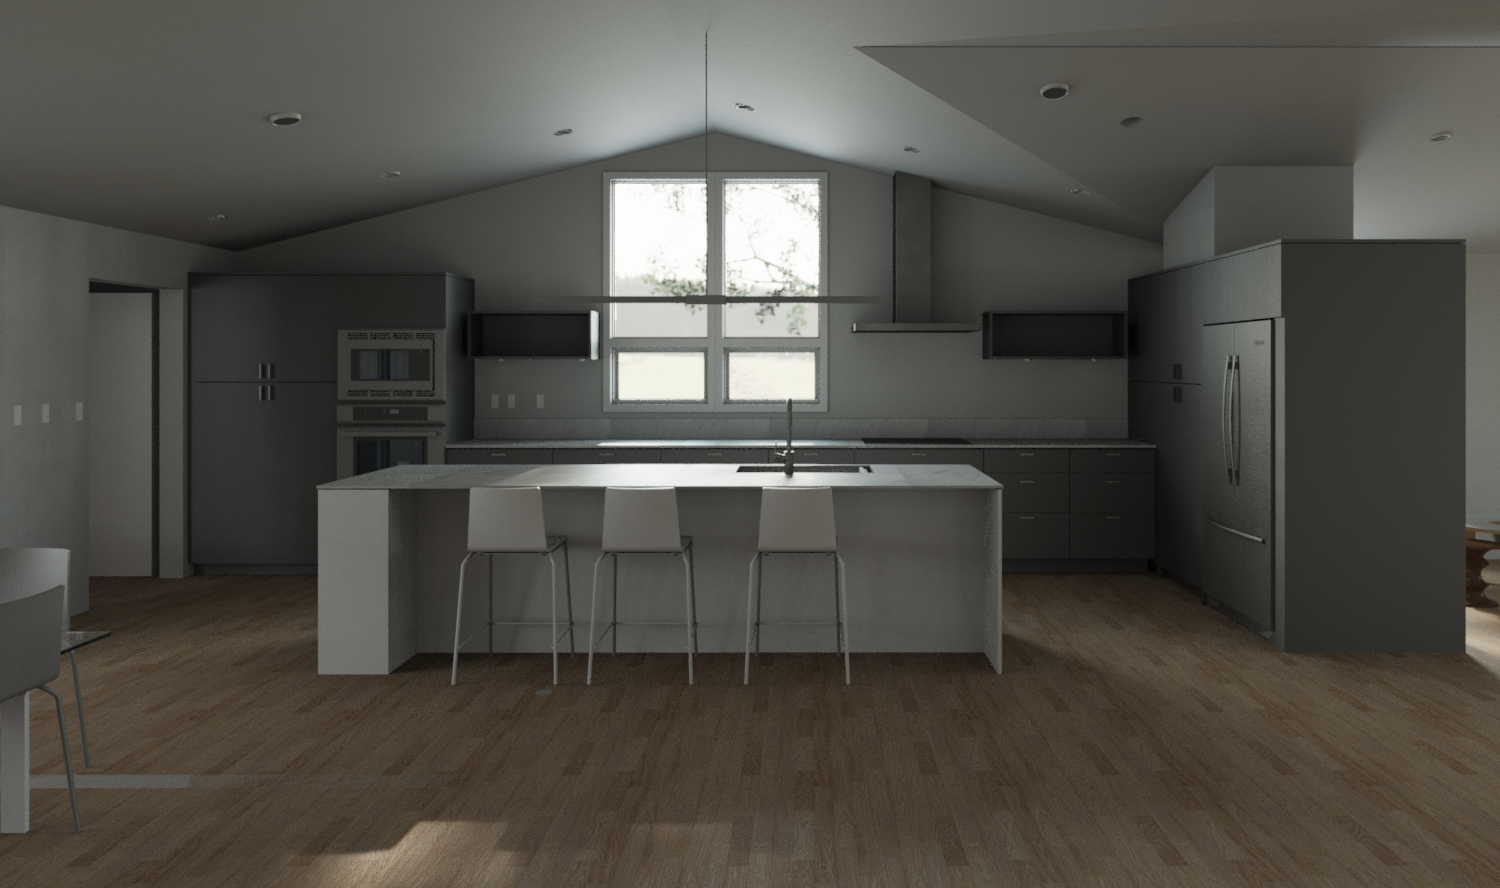 Haag-Docter-Model.rvt_2016-Feb-01_03-35-49PM-000_3D_View_-_Kitchen_from_stairs_-_all_gray_-_white_island.png